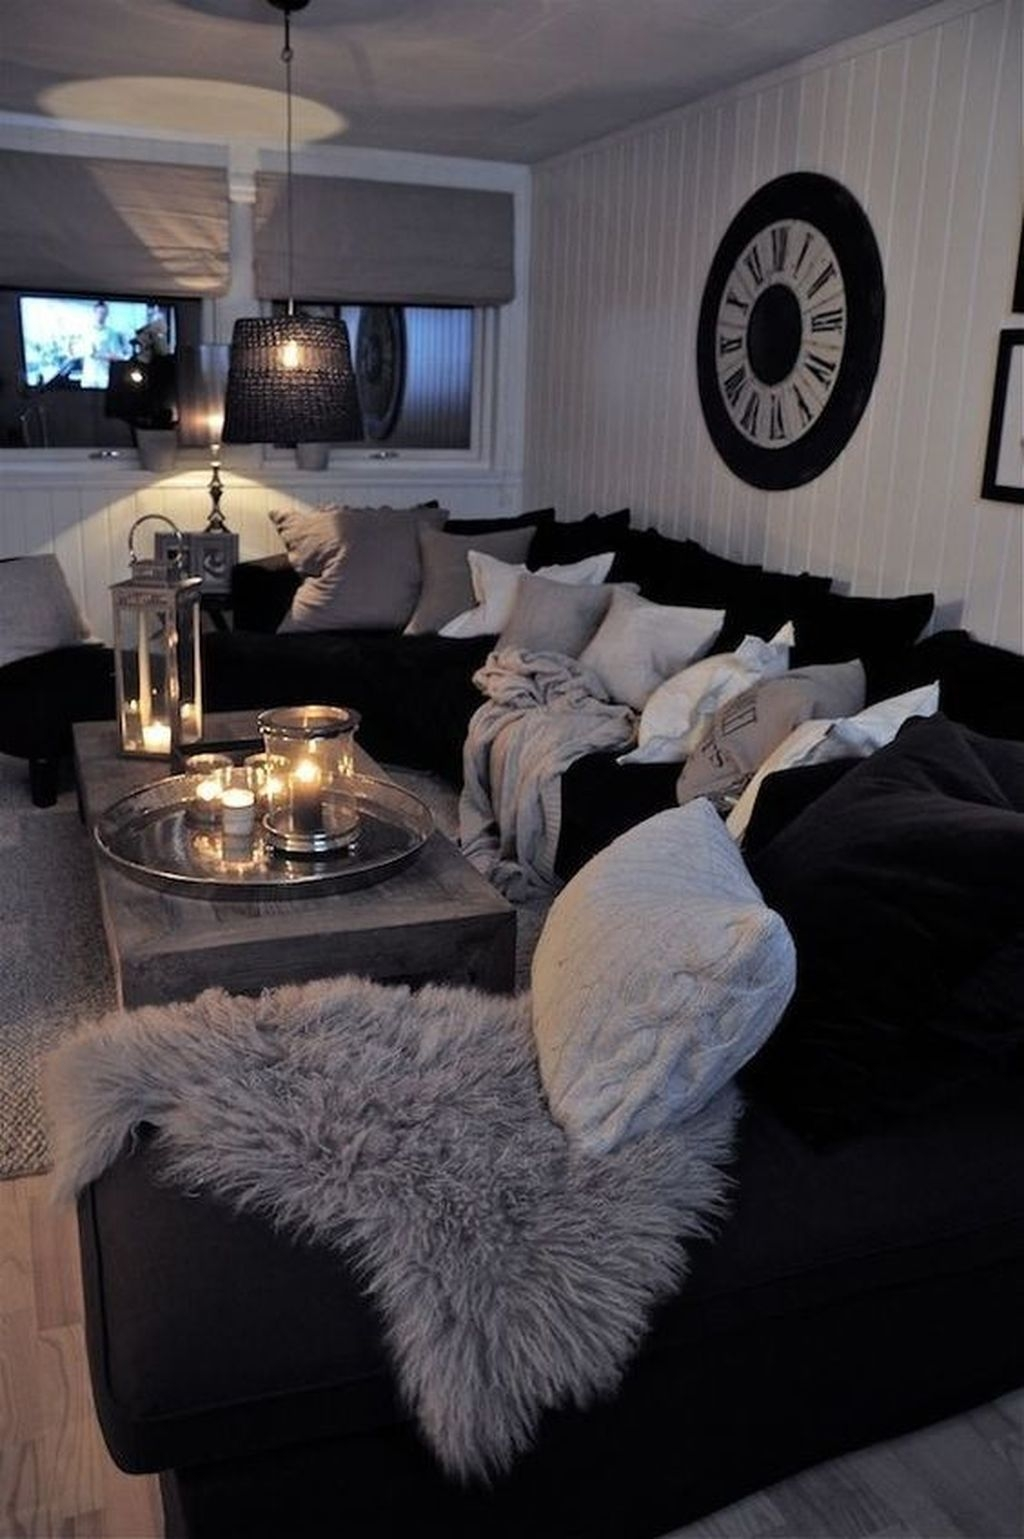 The Best Living Room Decorating Ideas Trends 2019 34